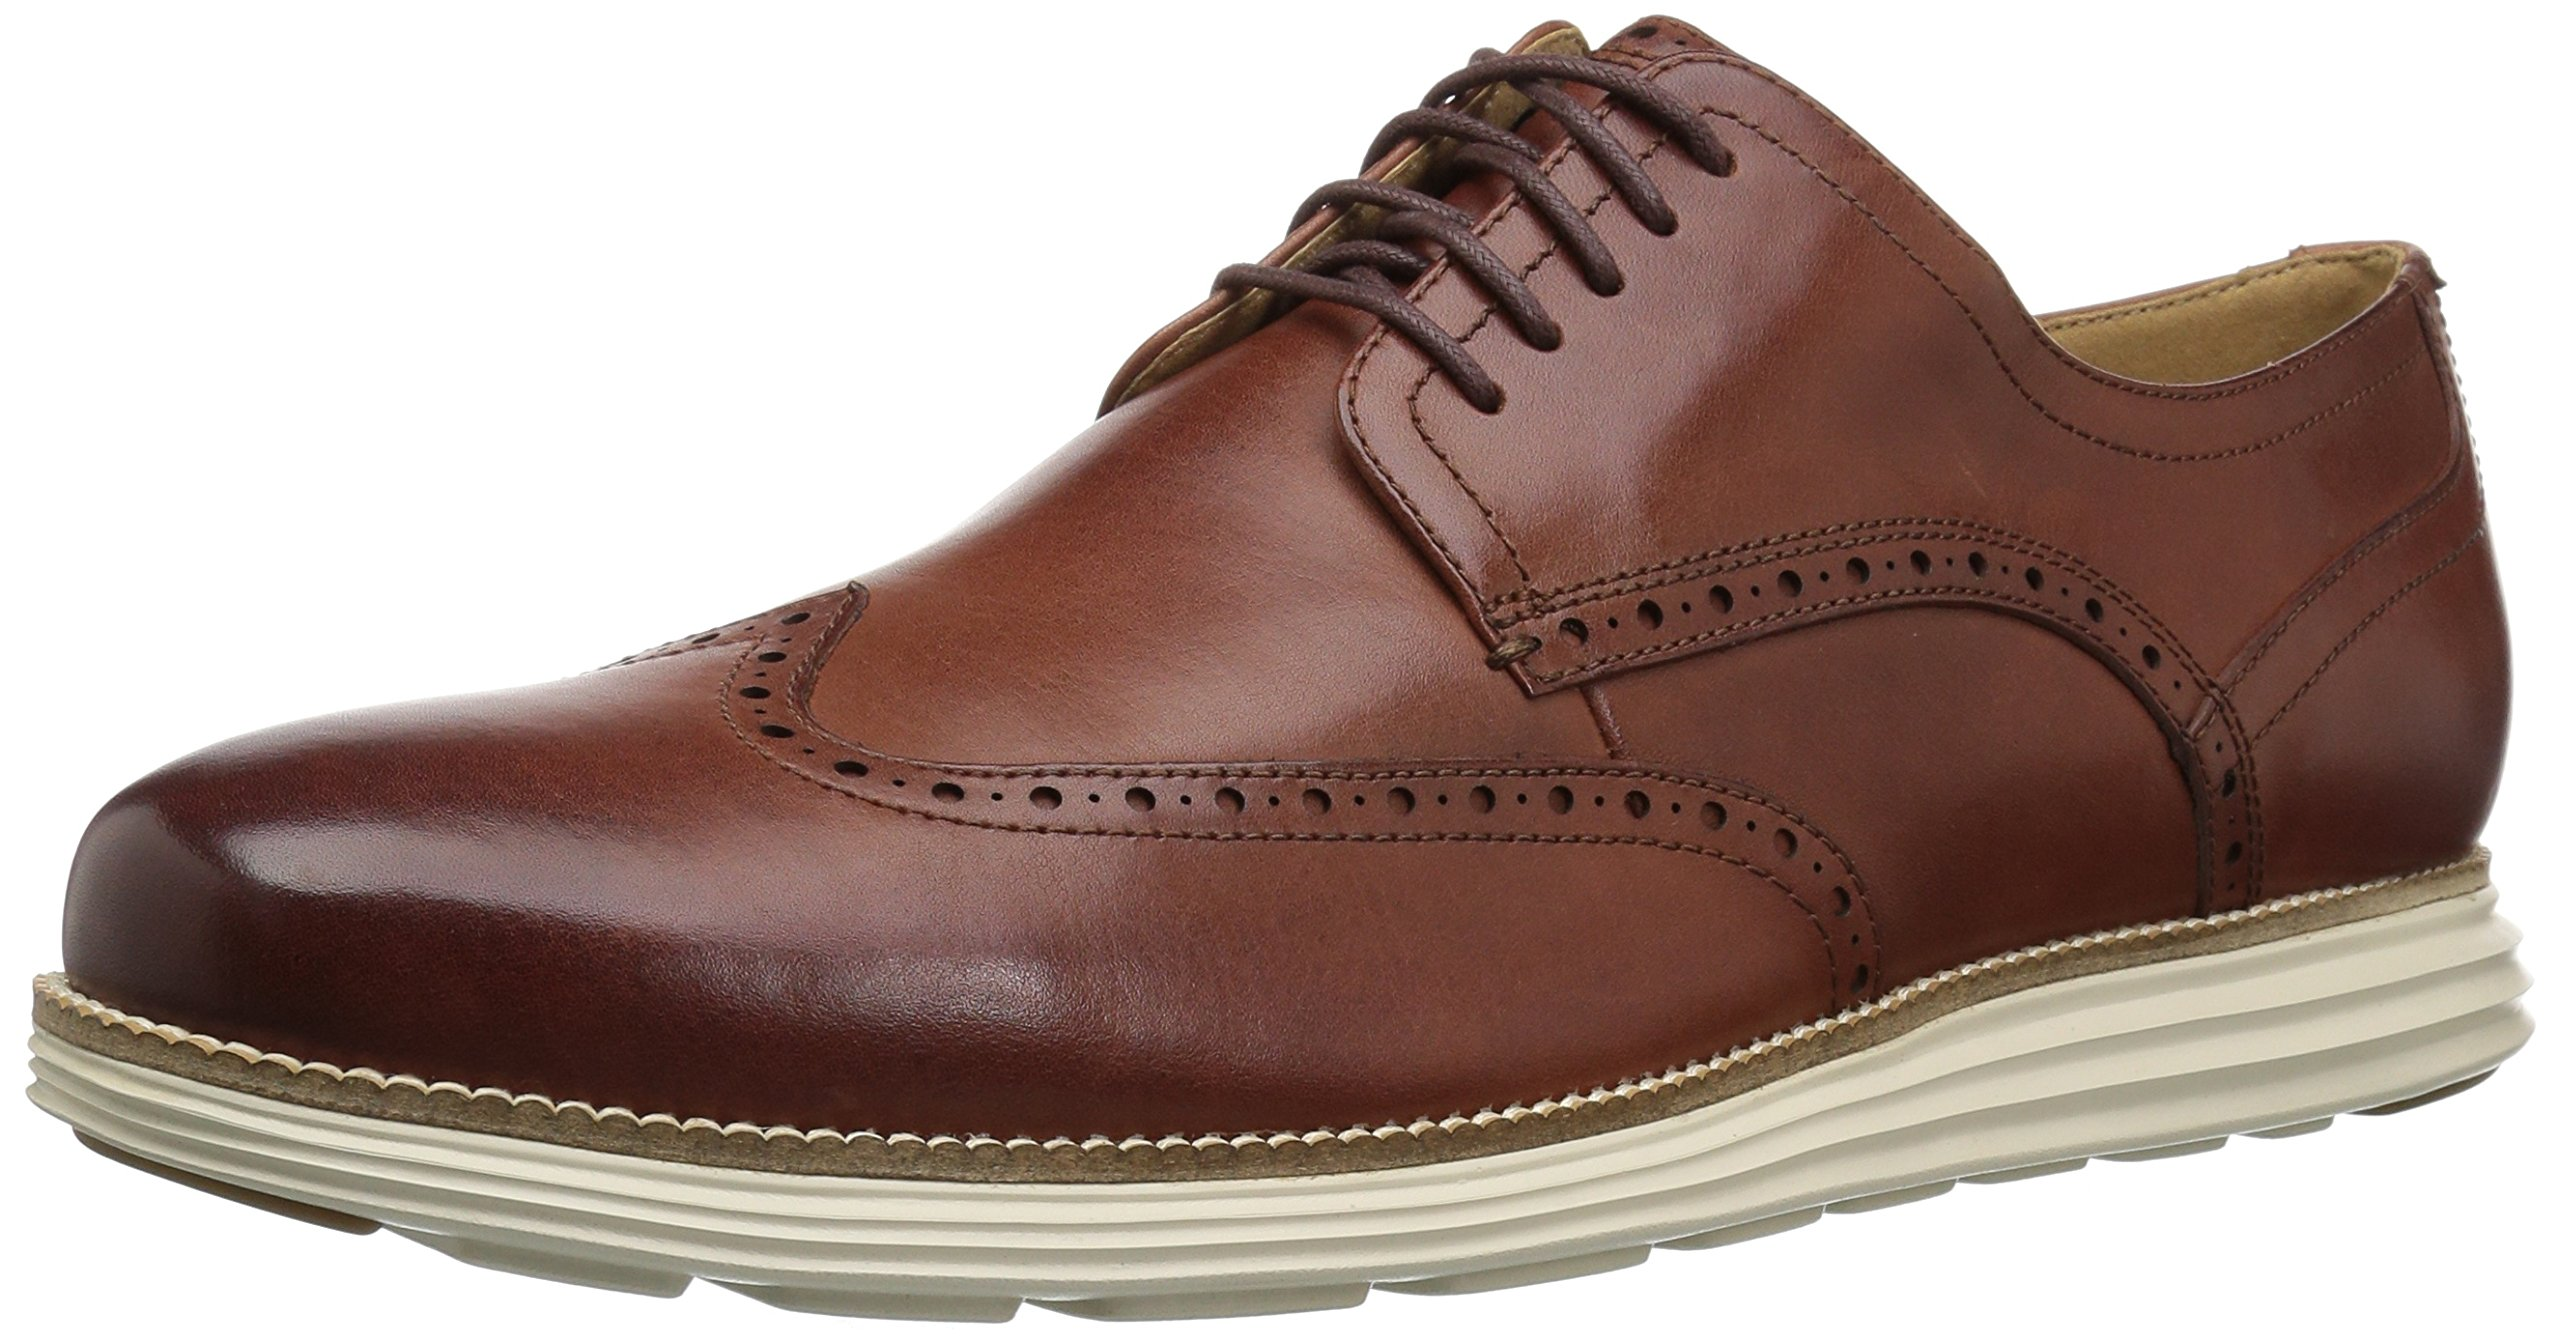 Cole Haan Men's Original Grand Shortwing Oxford Shoe, woodbury leather/ivory, 14 W US